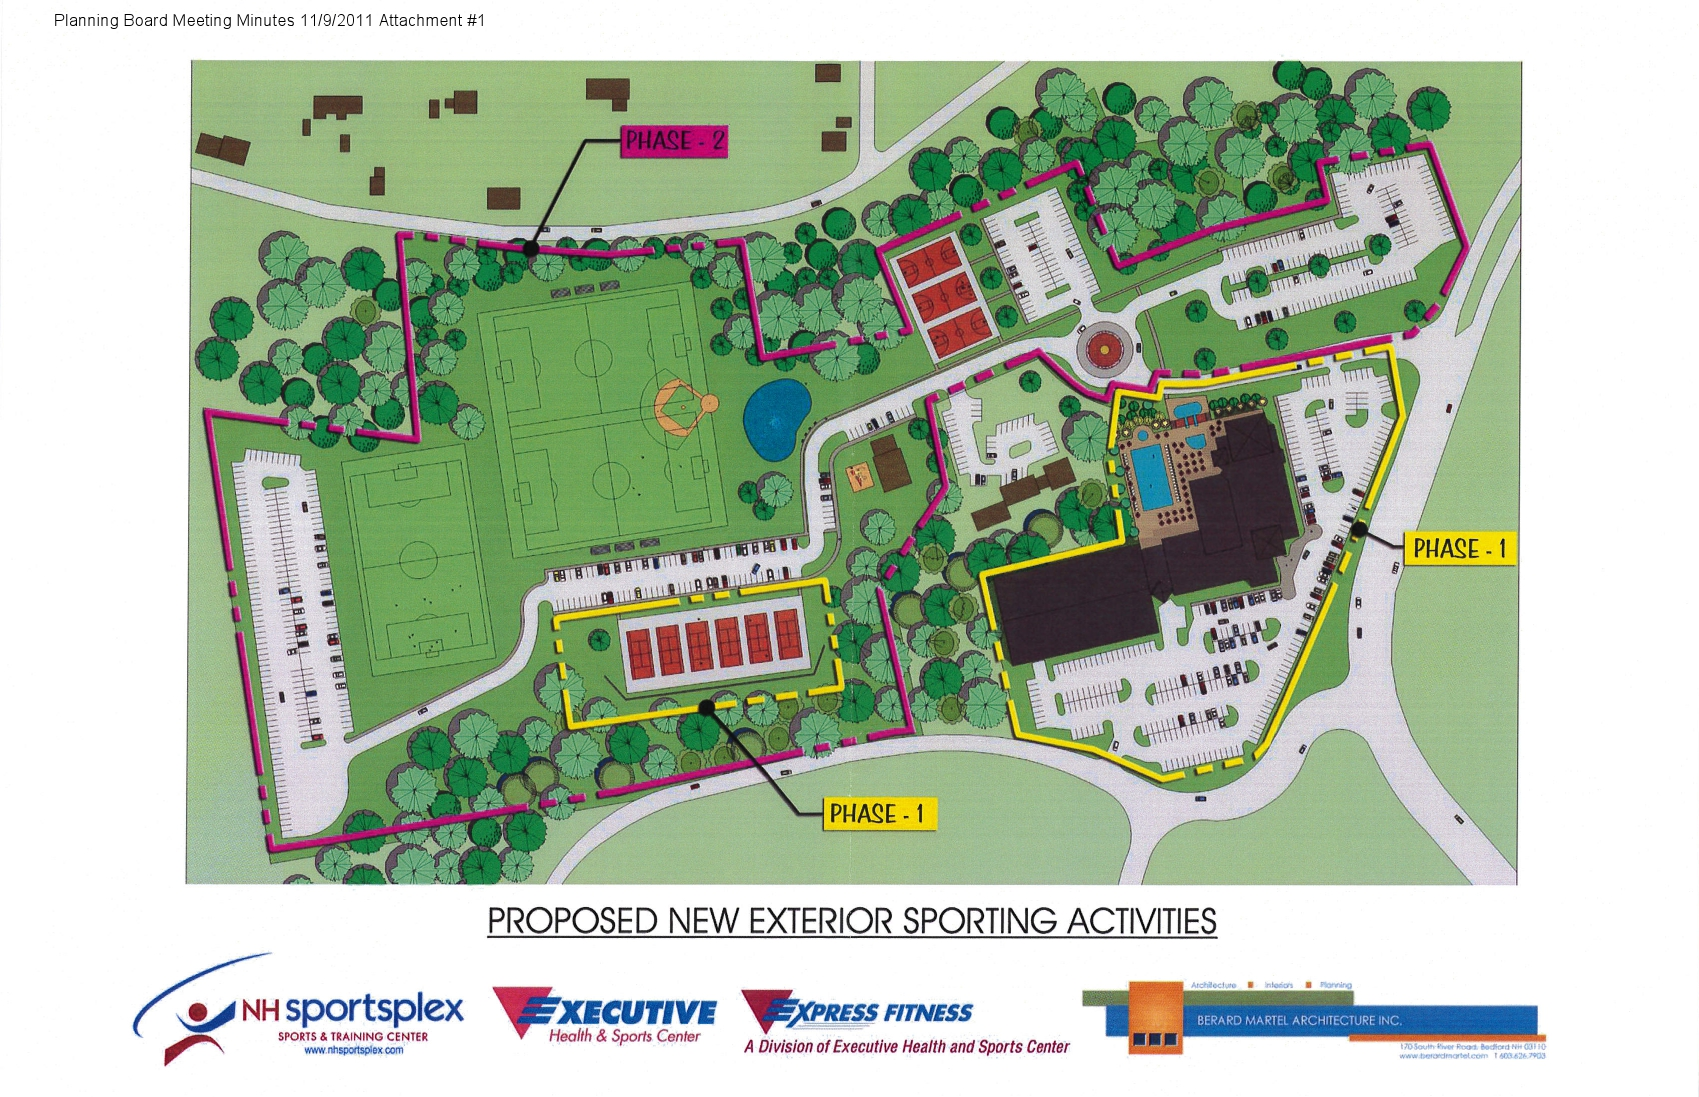 Executive Health Club and Sports Center Expansion Plans